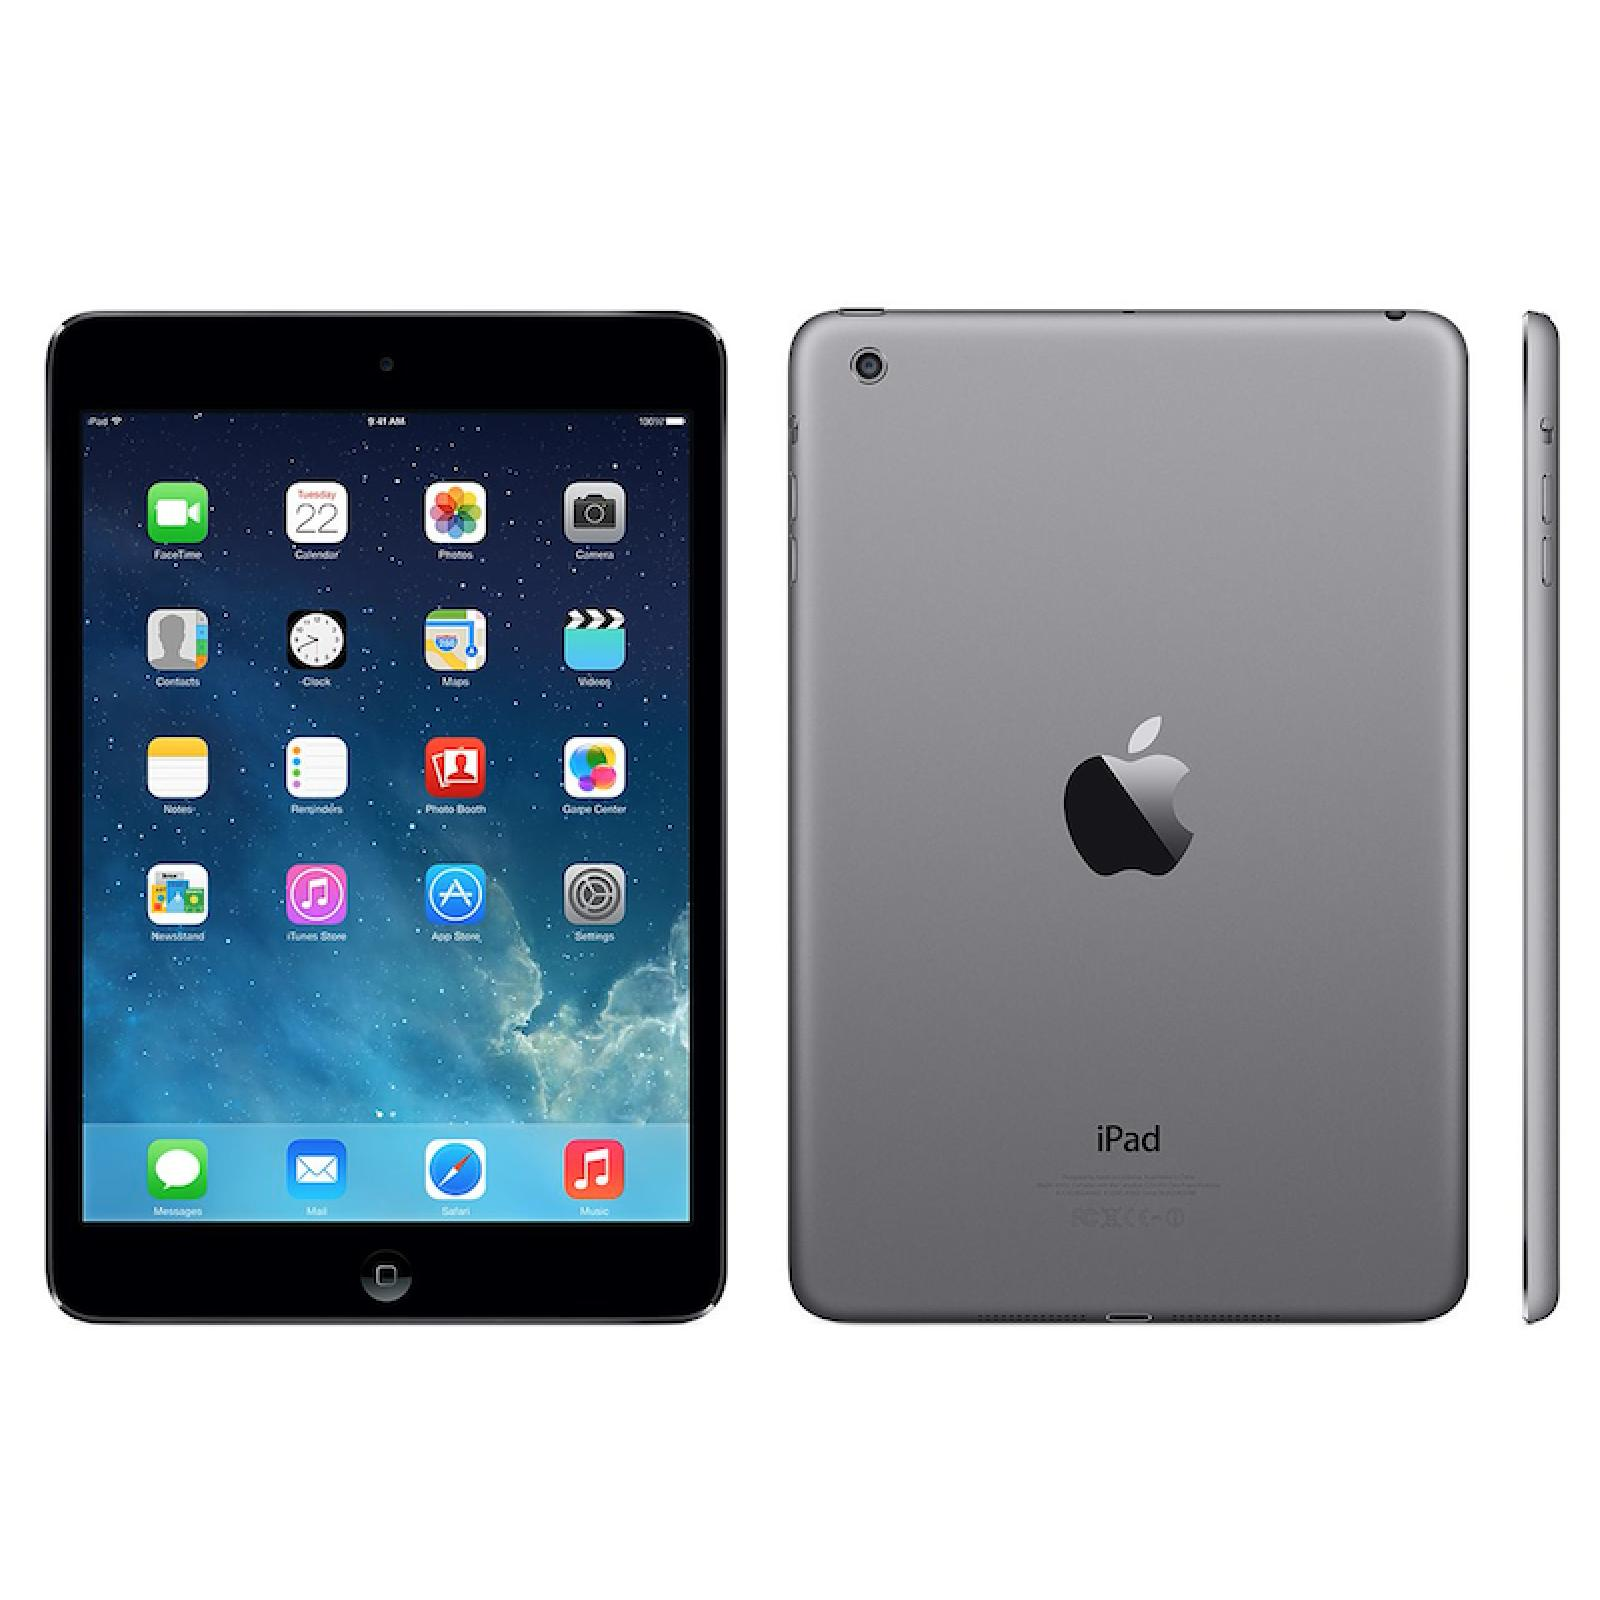 iPad mini 2 16 GB - Wifi - Gris espacial